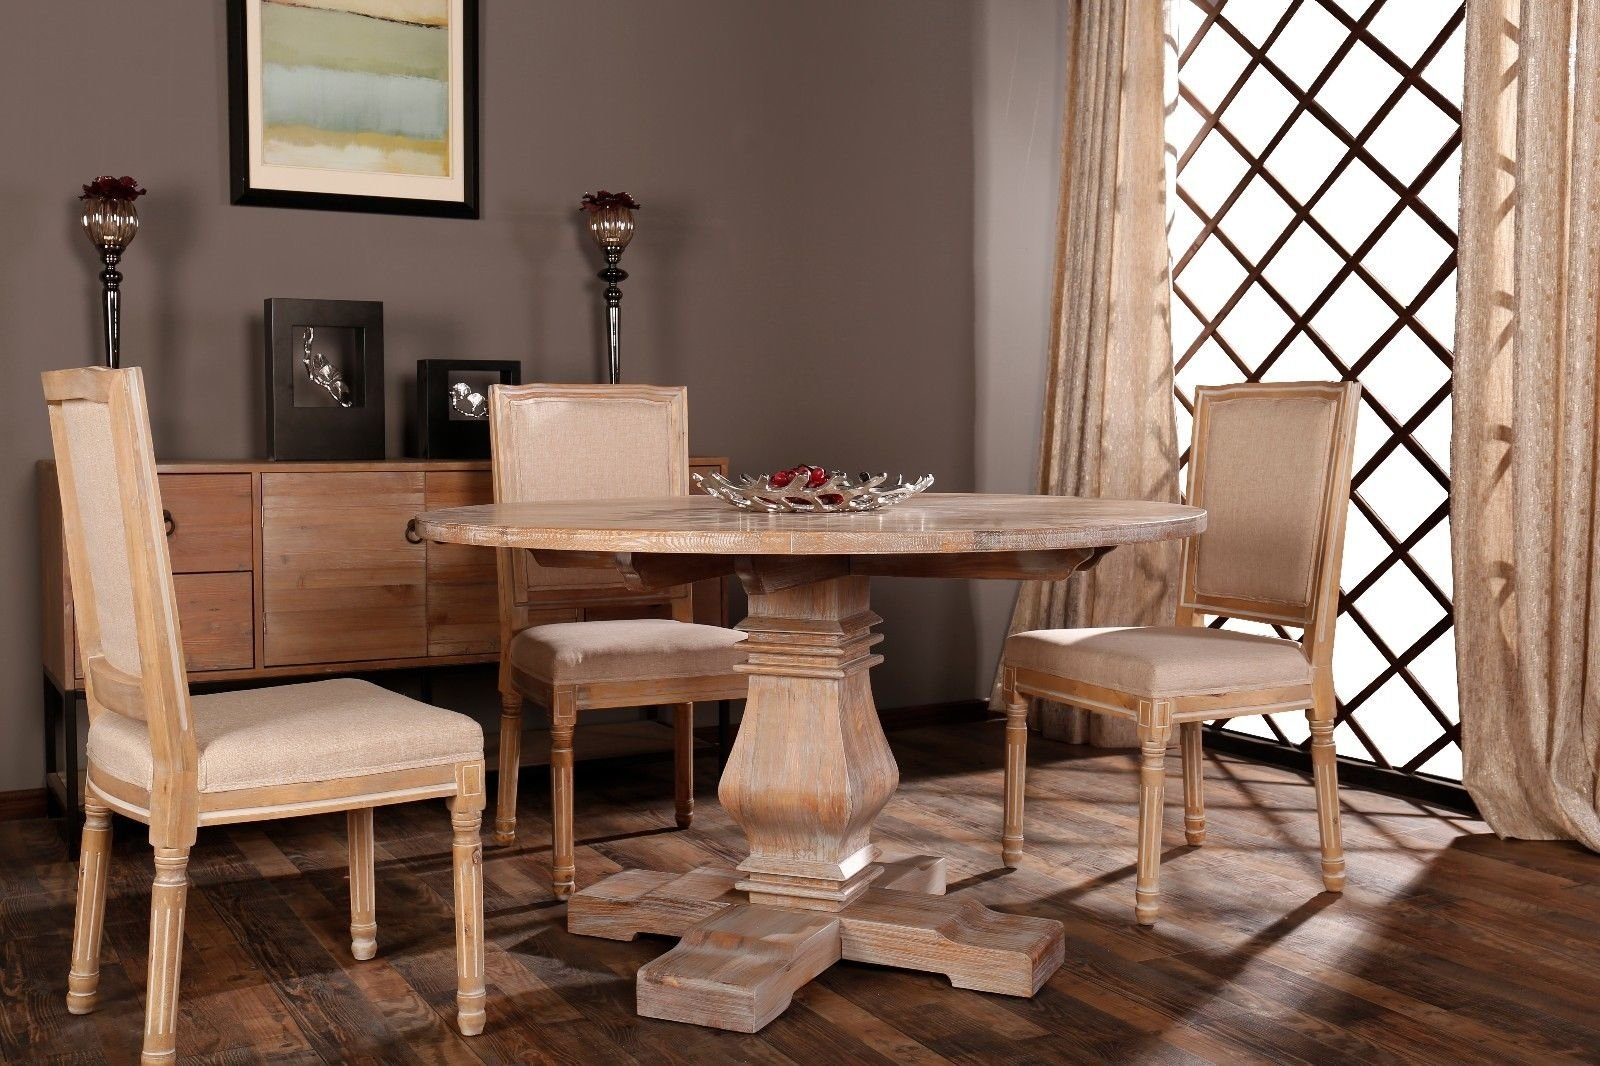 Clic Rustic Style Round Dining Room Kitchen Table With Distressed Details Beige